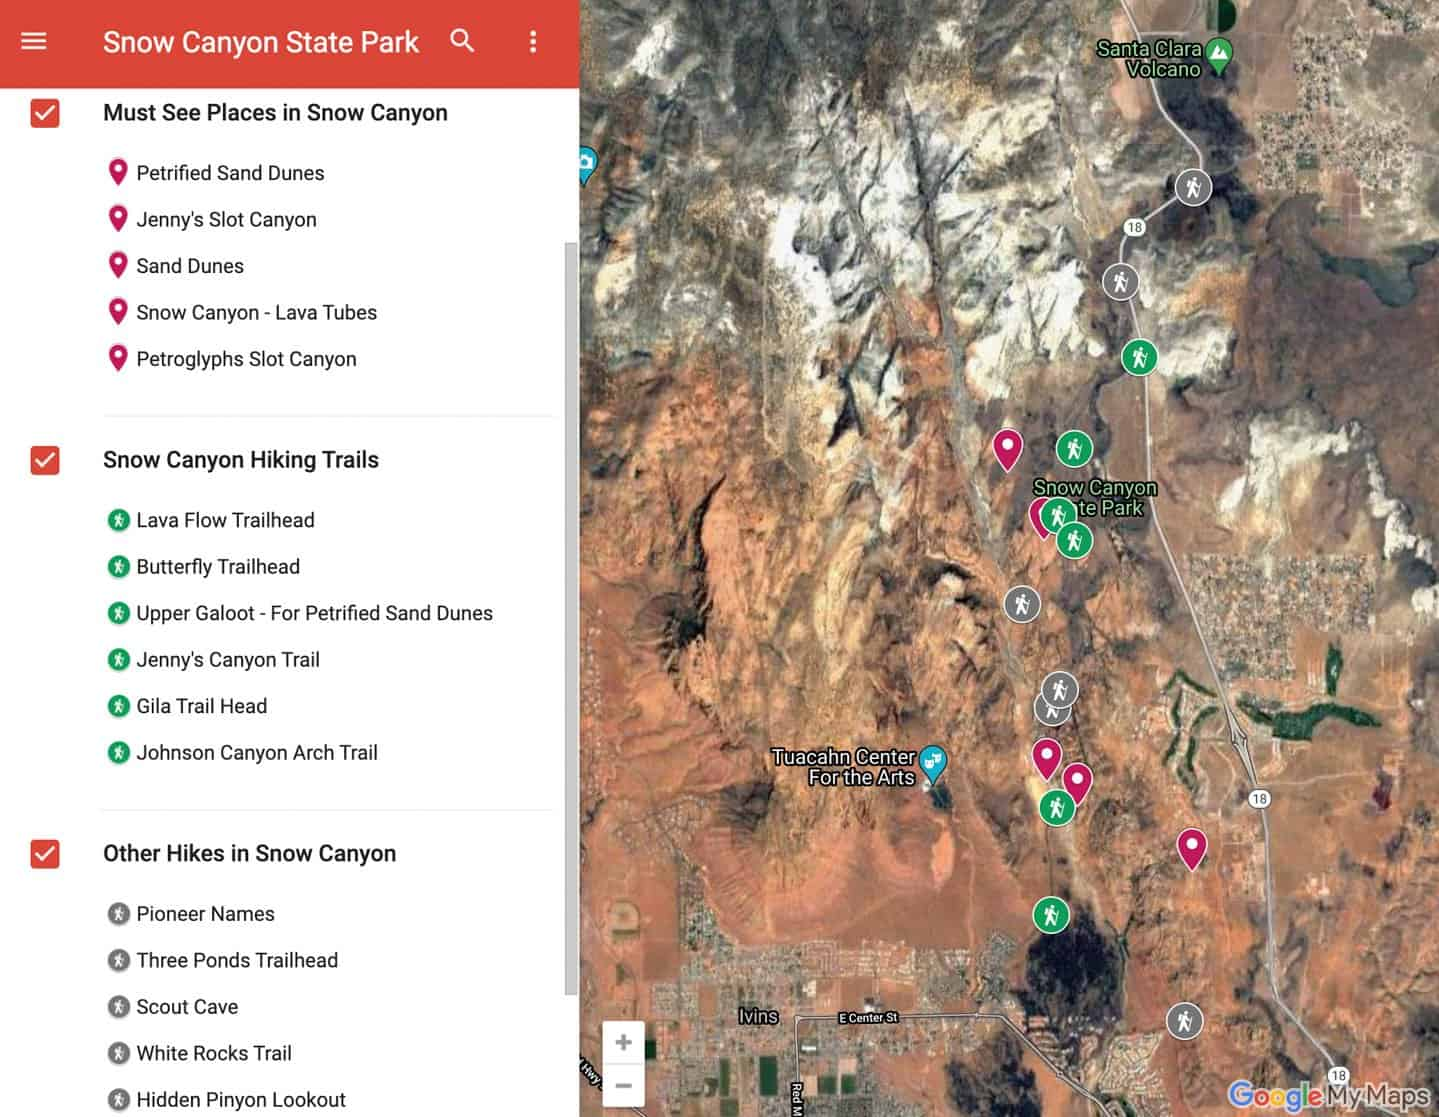 Map of Snow Canyon State Park Utah